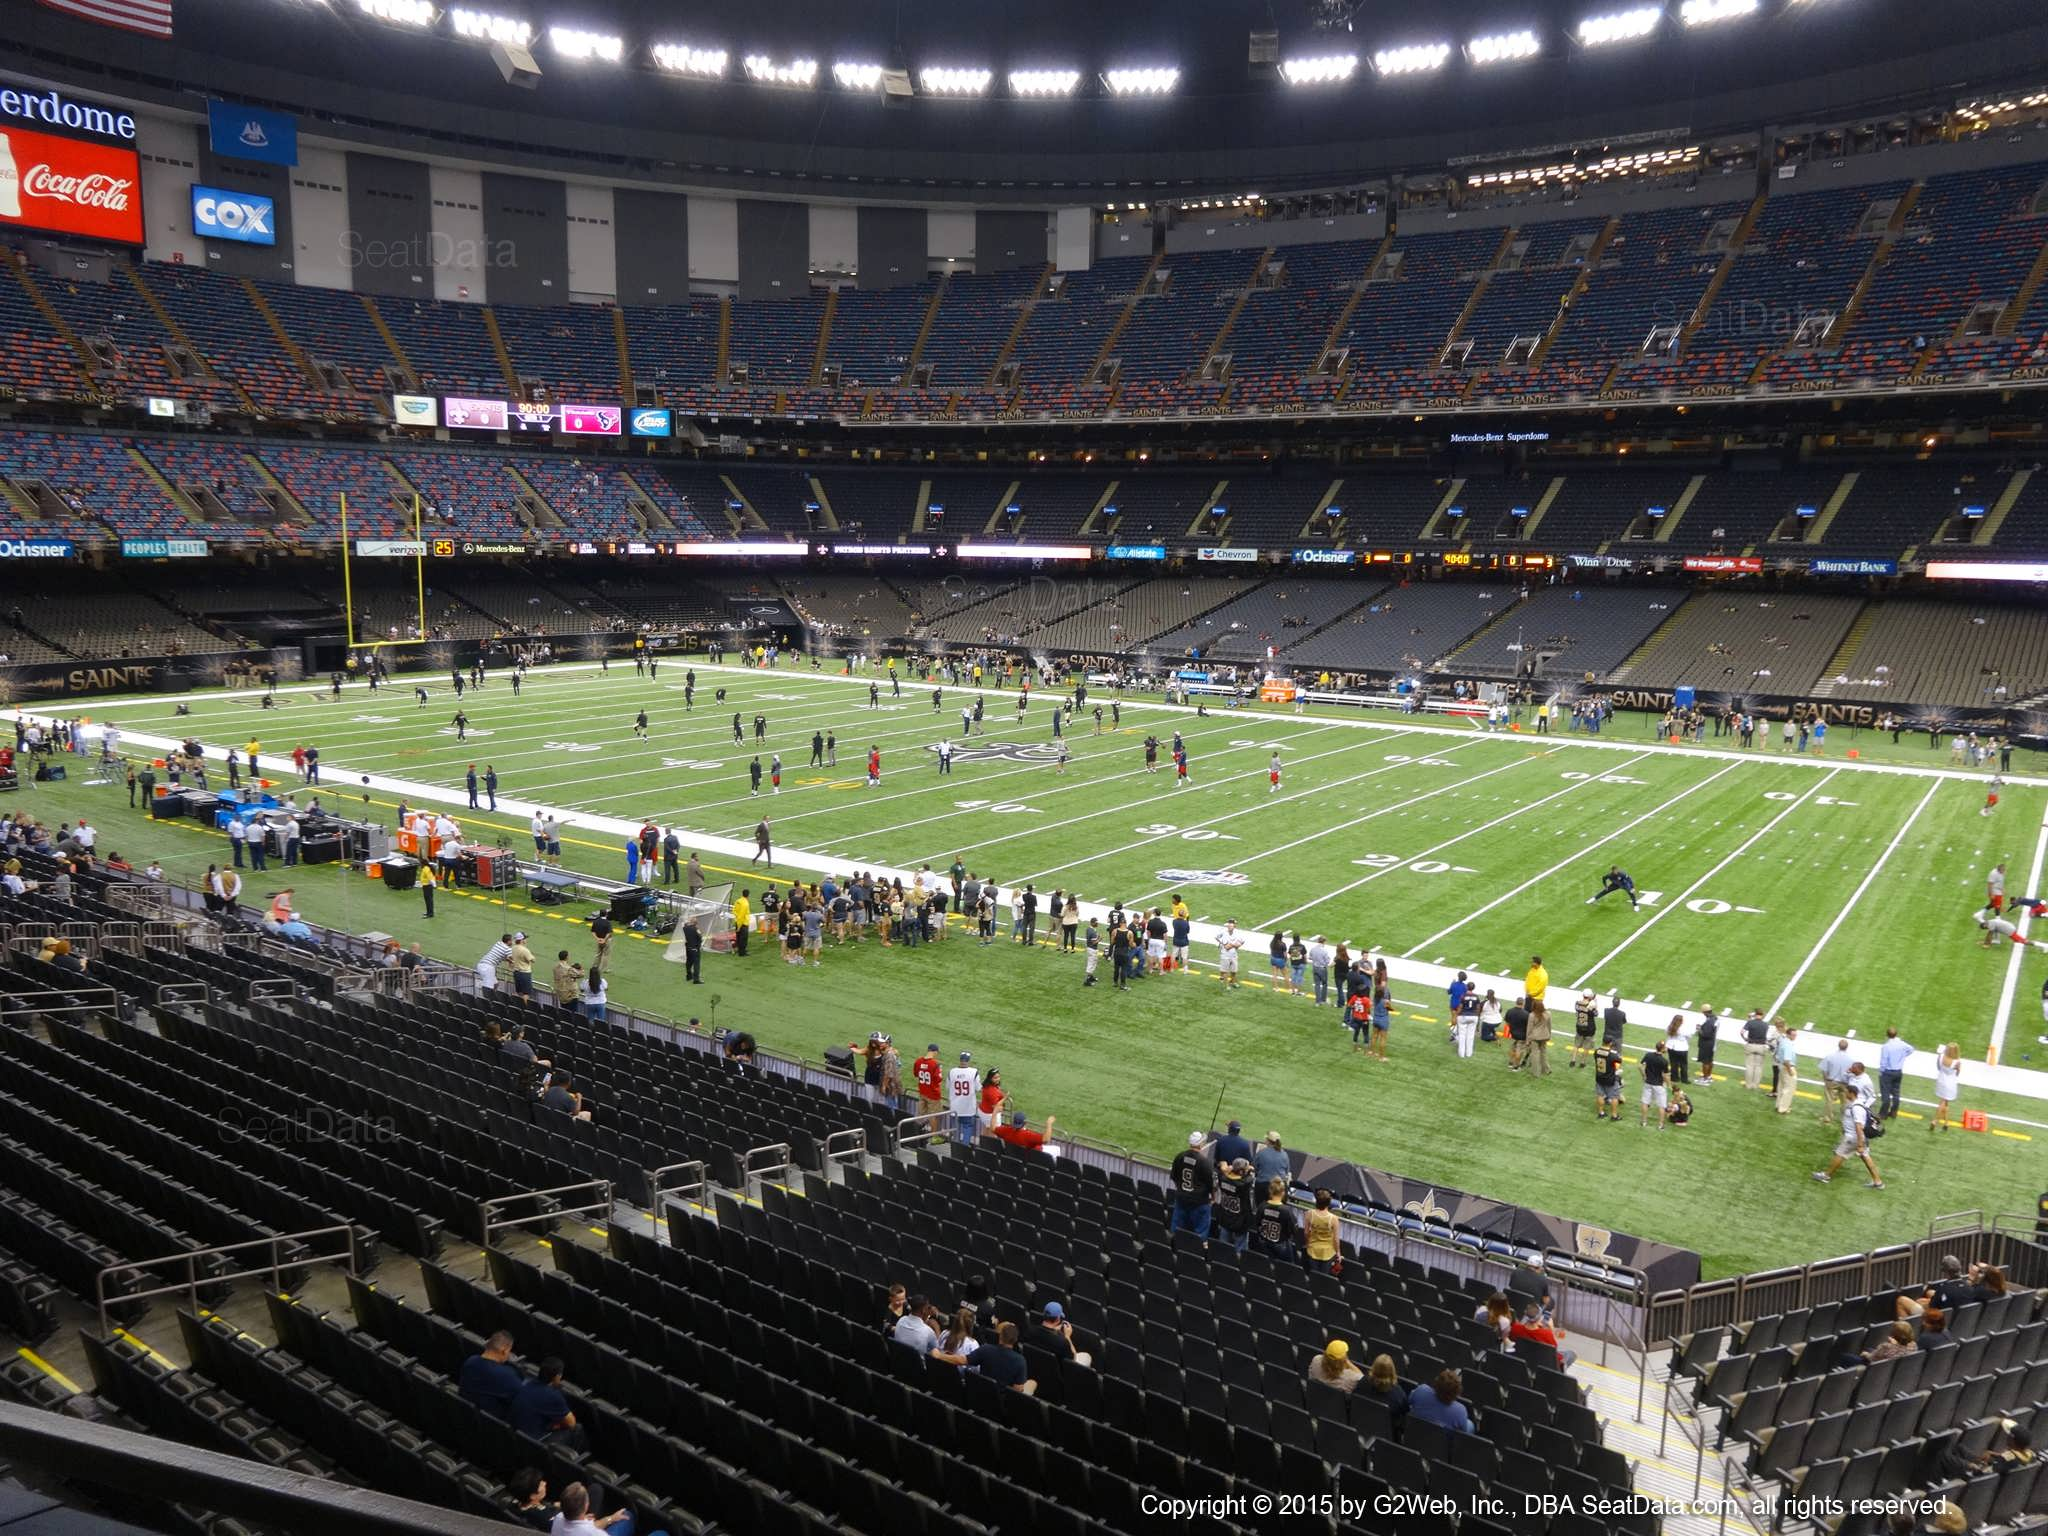 Seat view from section 213 at the Mercedes-Benz Superdome, home of the New Orleans Saints